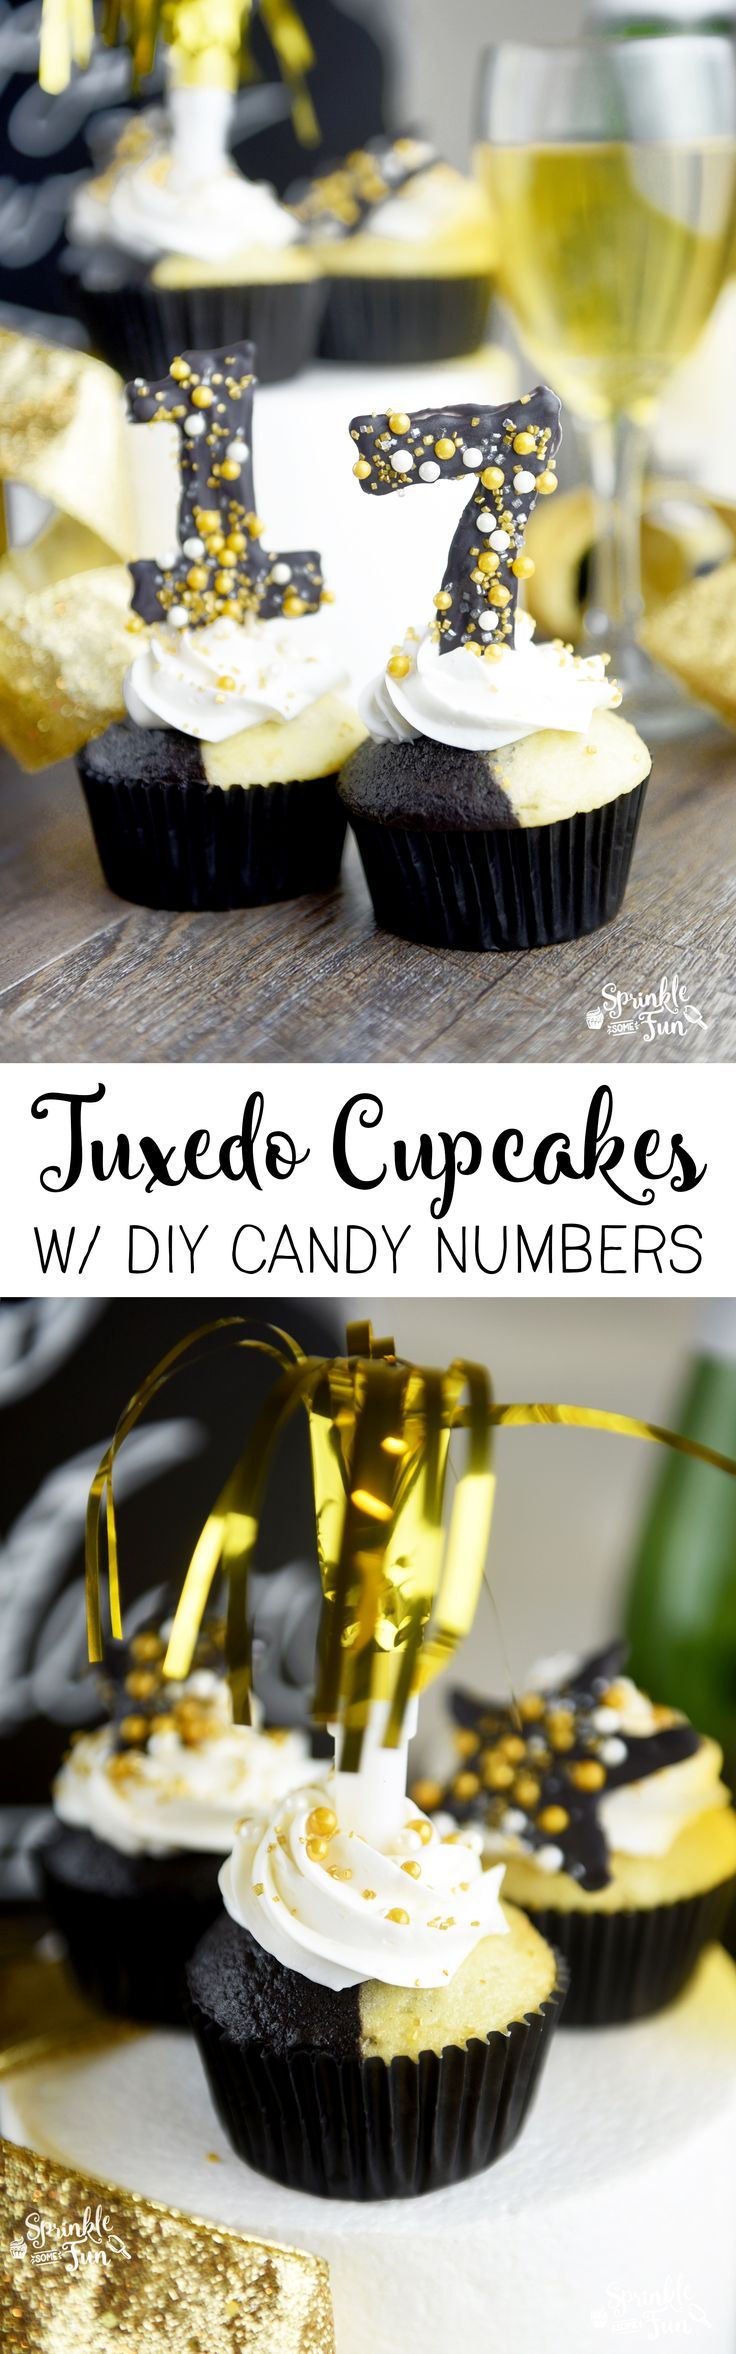 These Tuxedo Cupcakes with Candy Numbers are the perfect cupcakes to have at a New Years Eve party.   via @sprinklesomefun